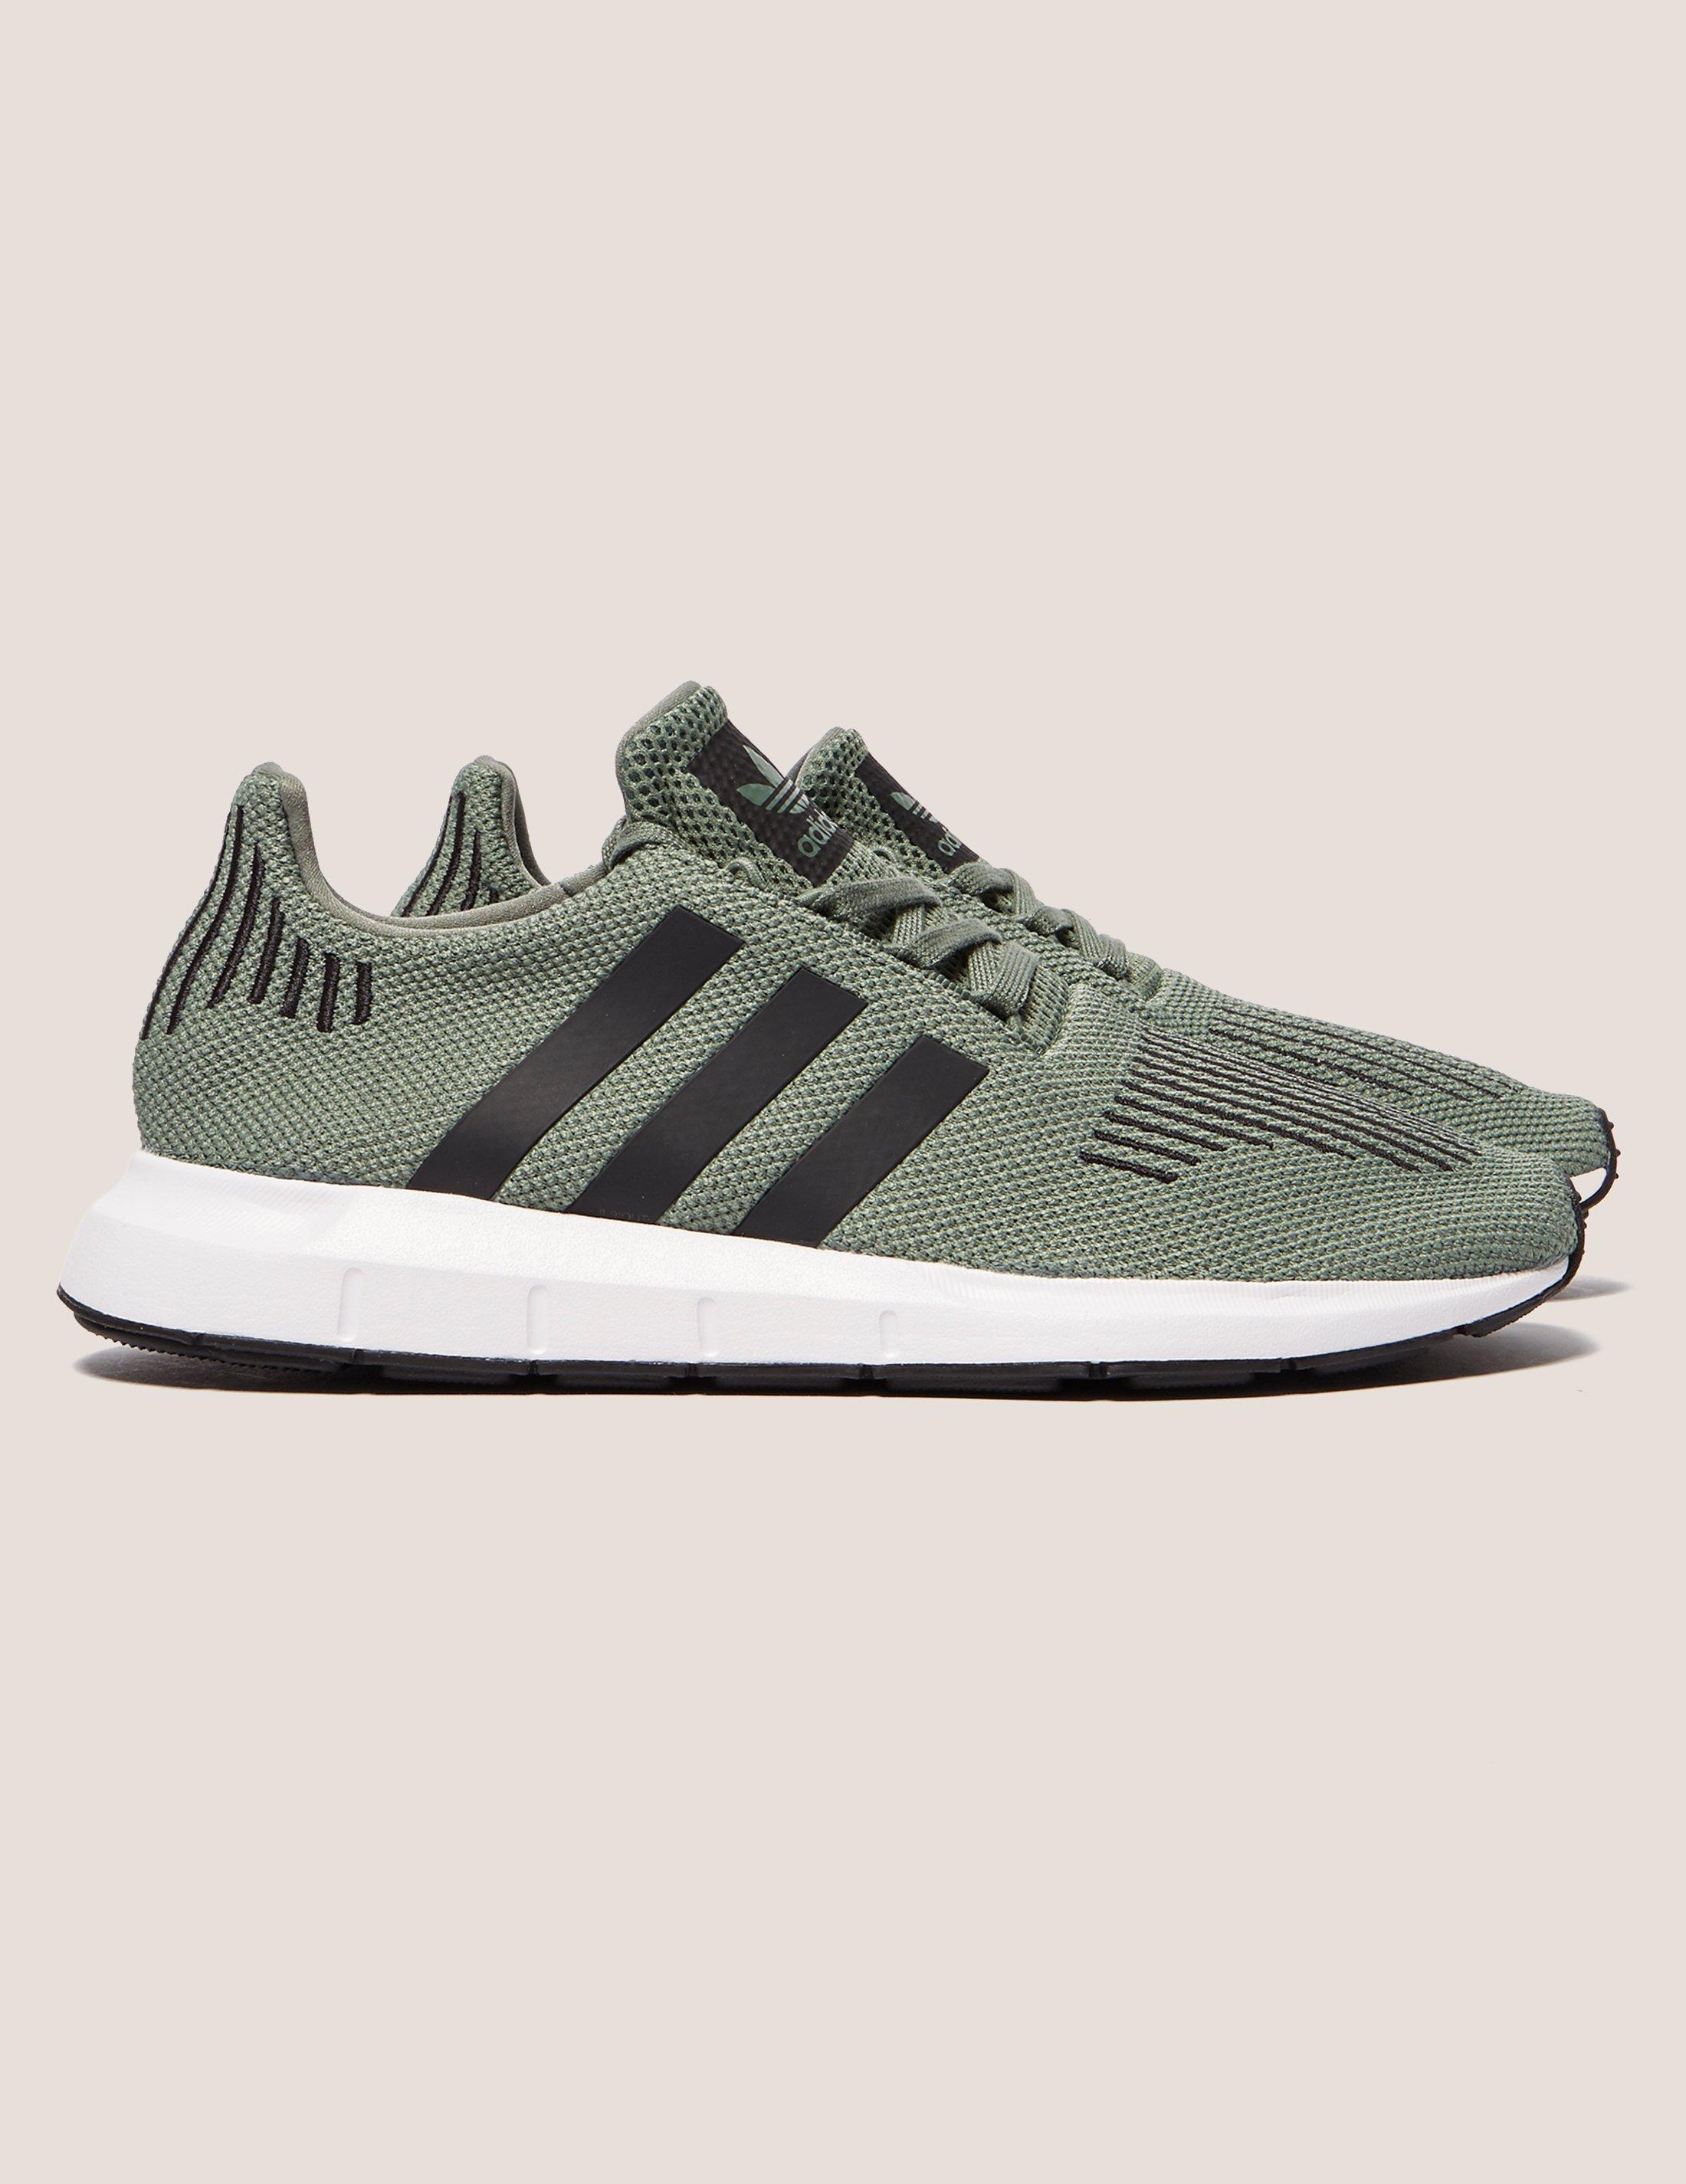 lyst adidas originali mens swift run grey in grigio per gli uomini.